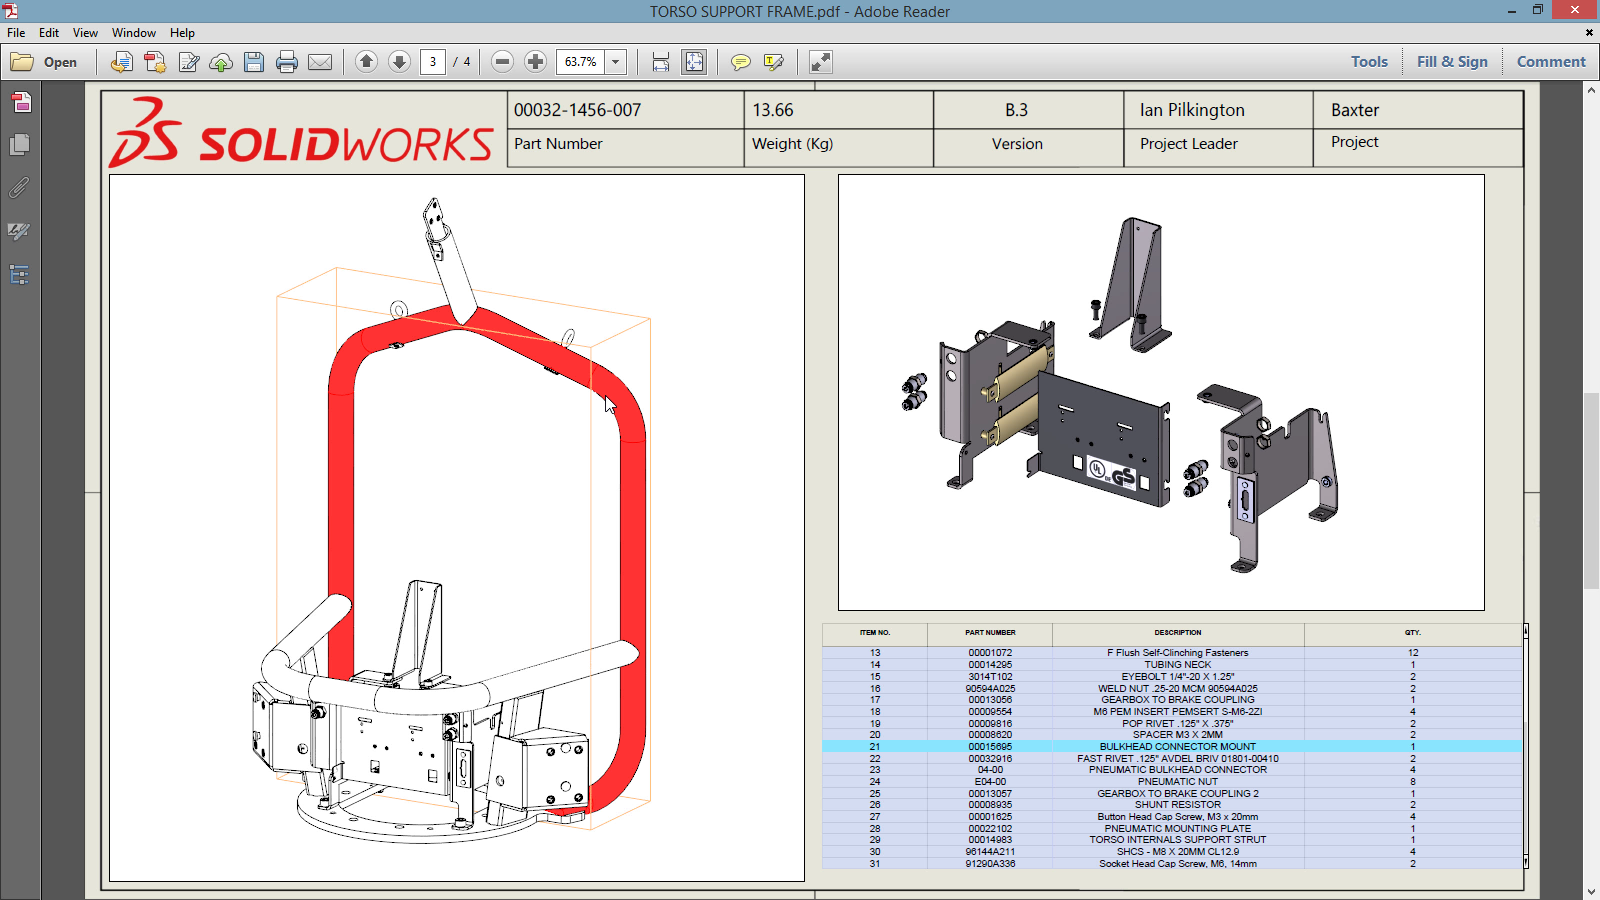 100 Solidworks Training Videos Are Now Available On